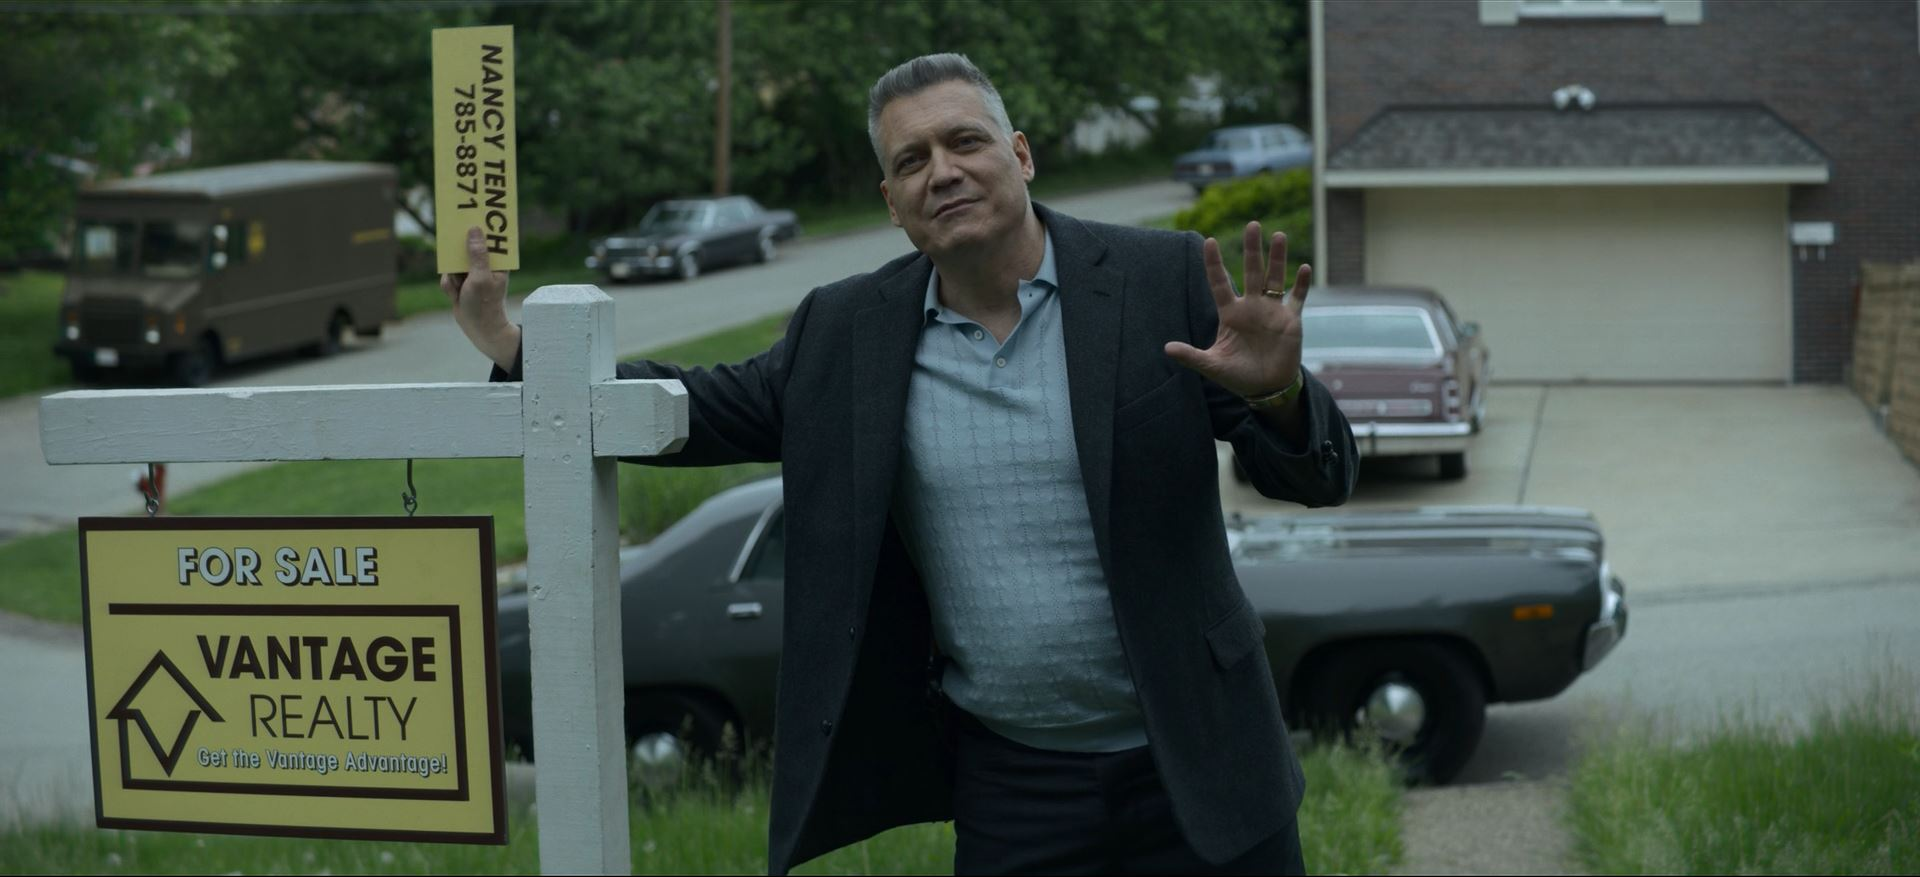 Mindhunter Season 2 Review - Holt McCallany as Bill Tench